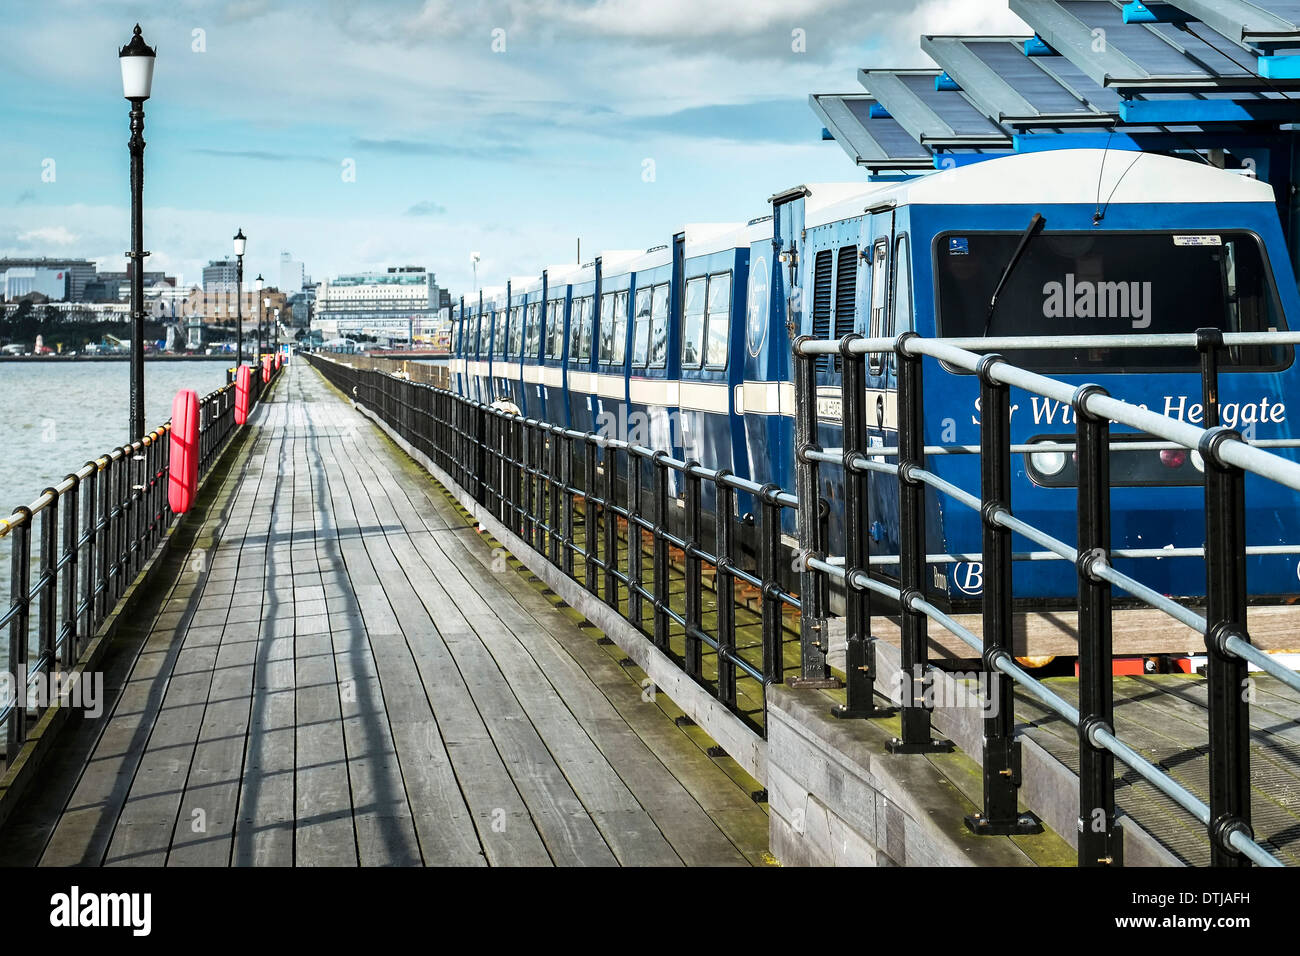 One of the electric trains at the pier head station on Southend Pier. - Stock Image